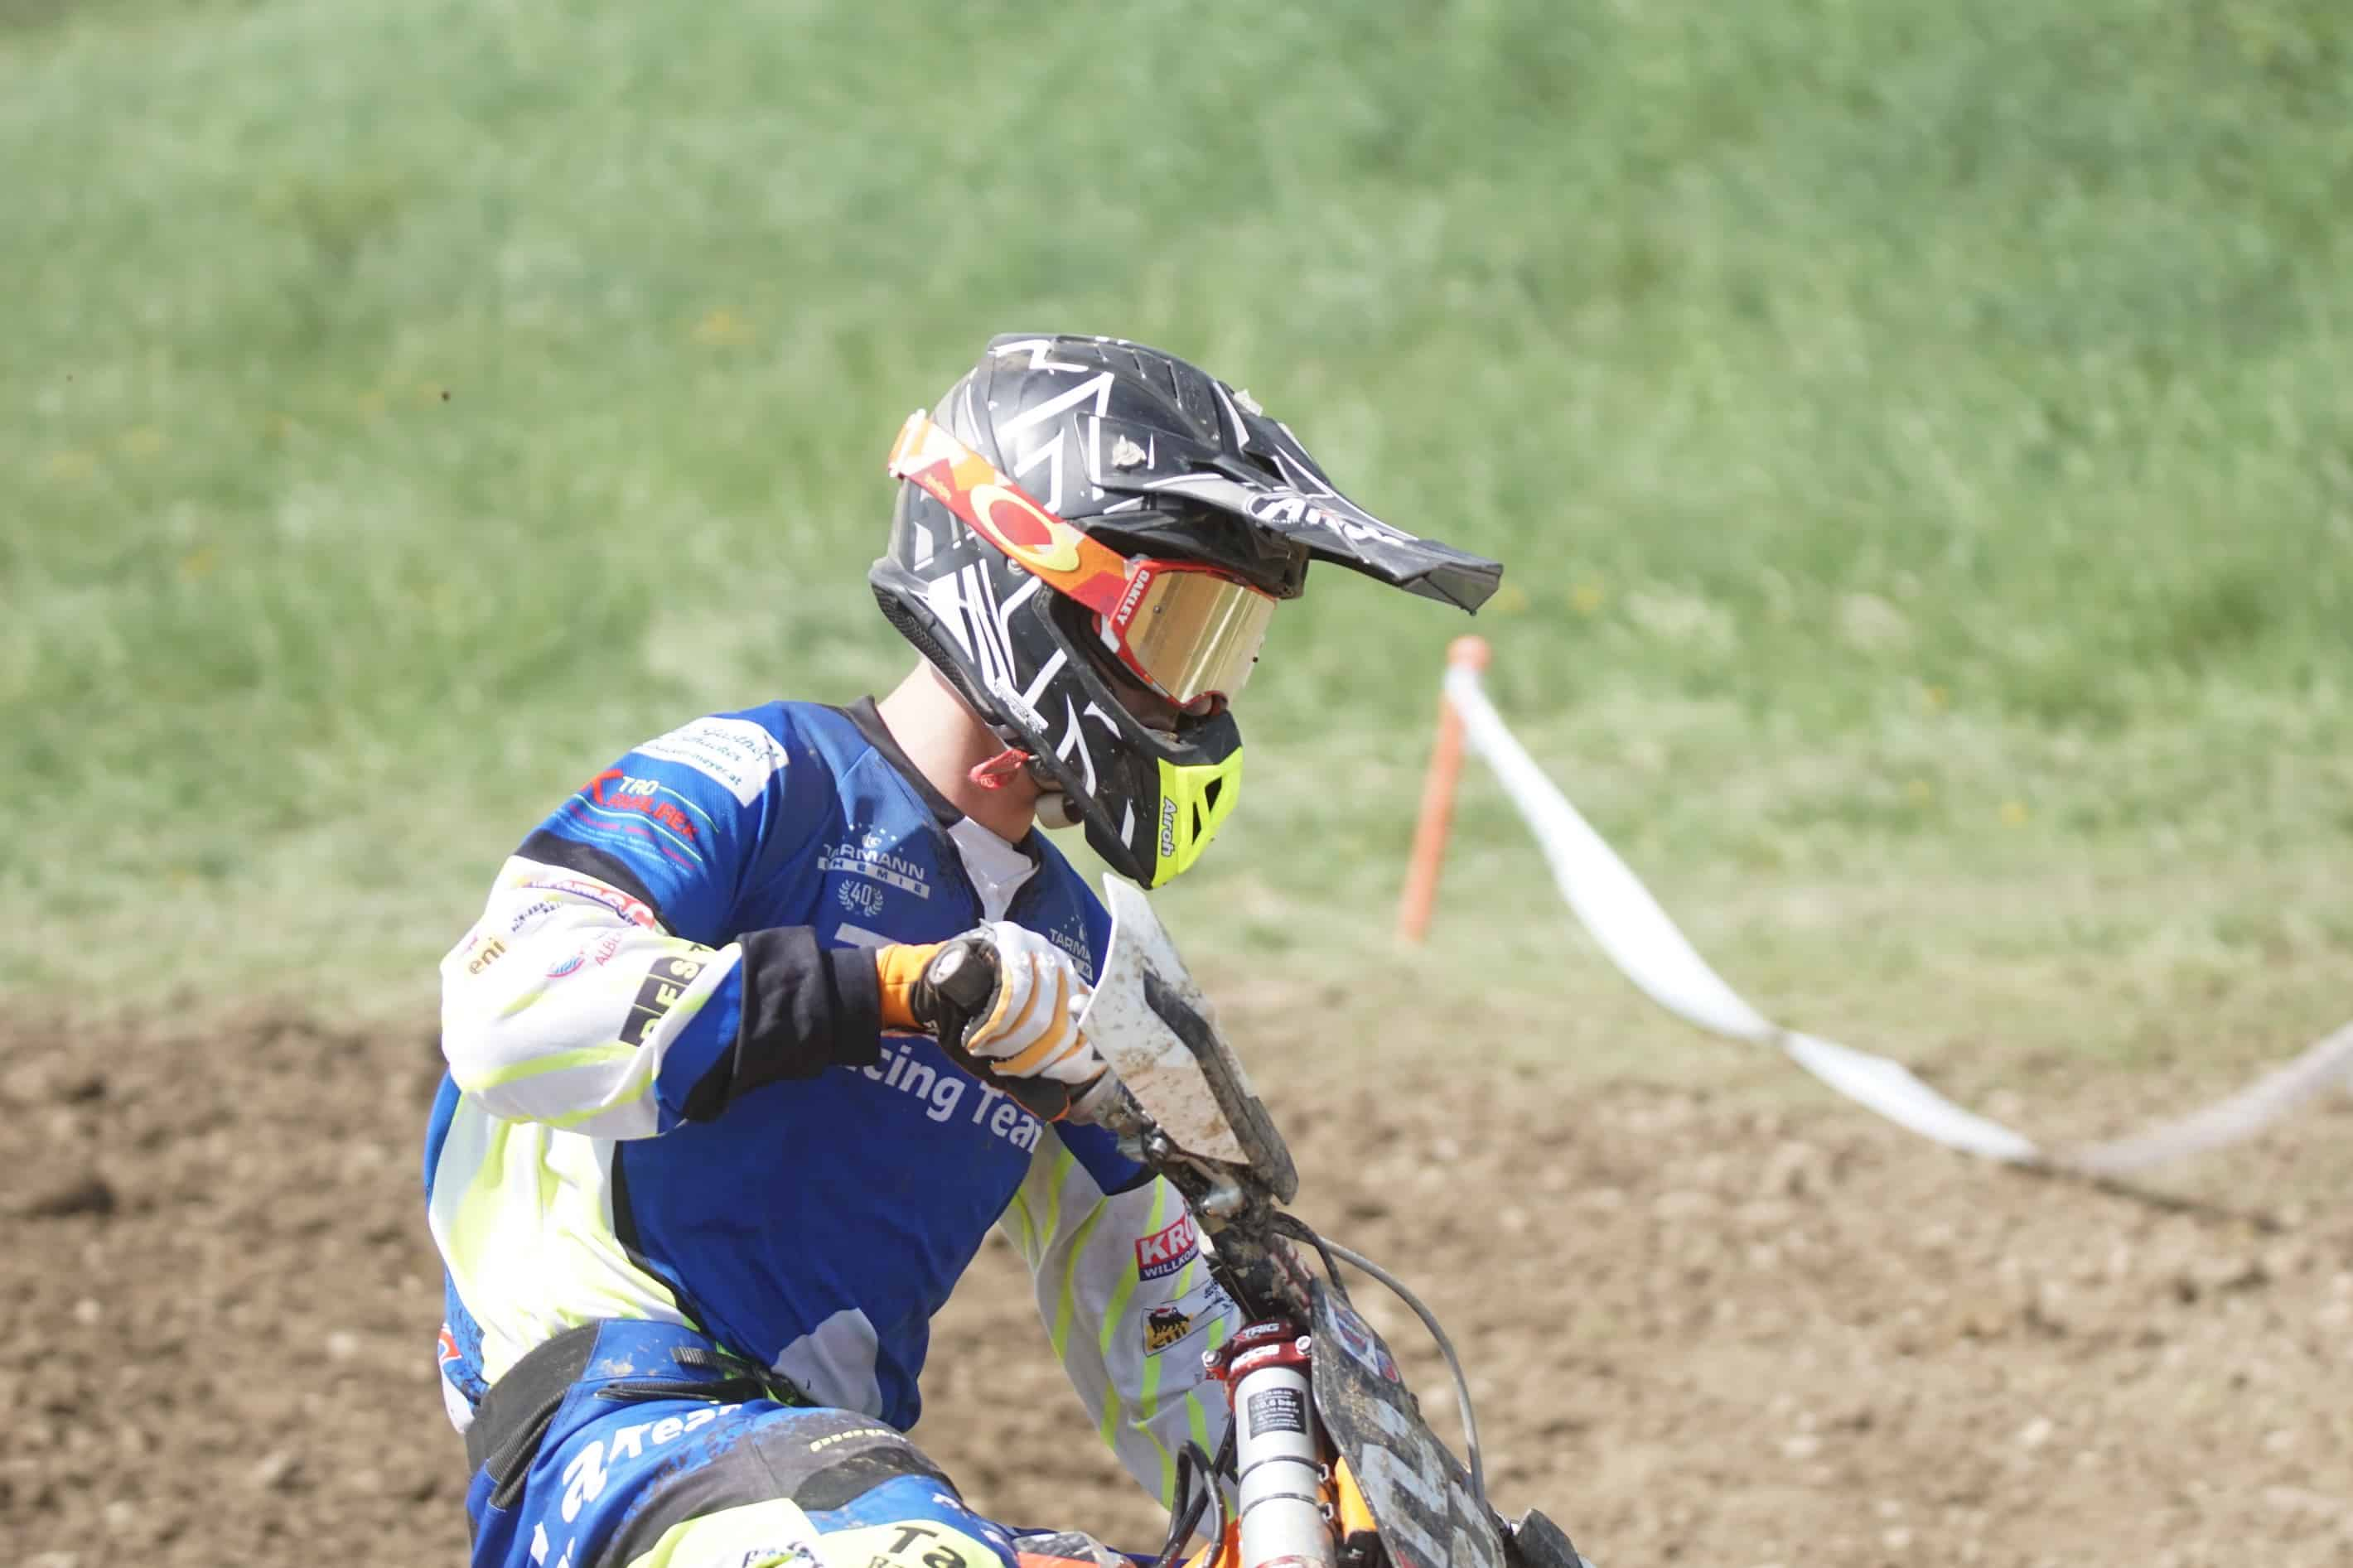 DSC 626_Moto Cross Sittendorf Teil1 am 29.04.2018